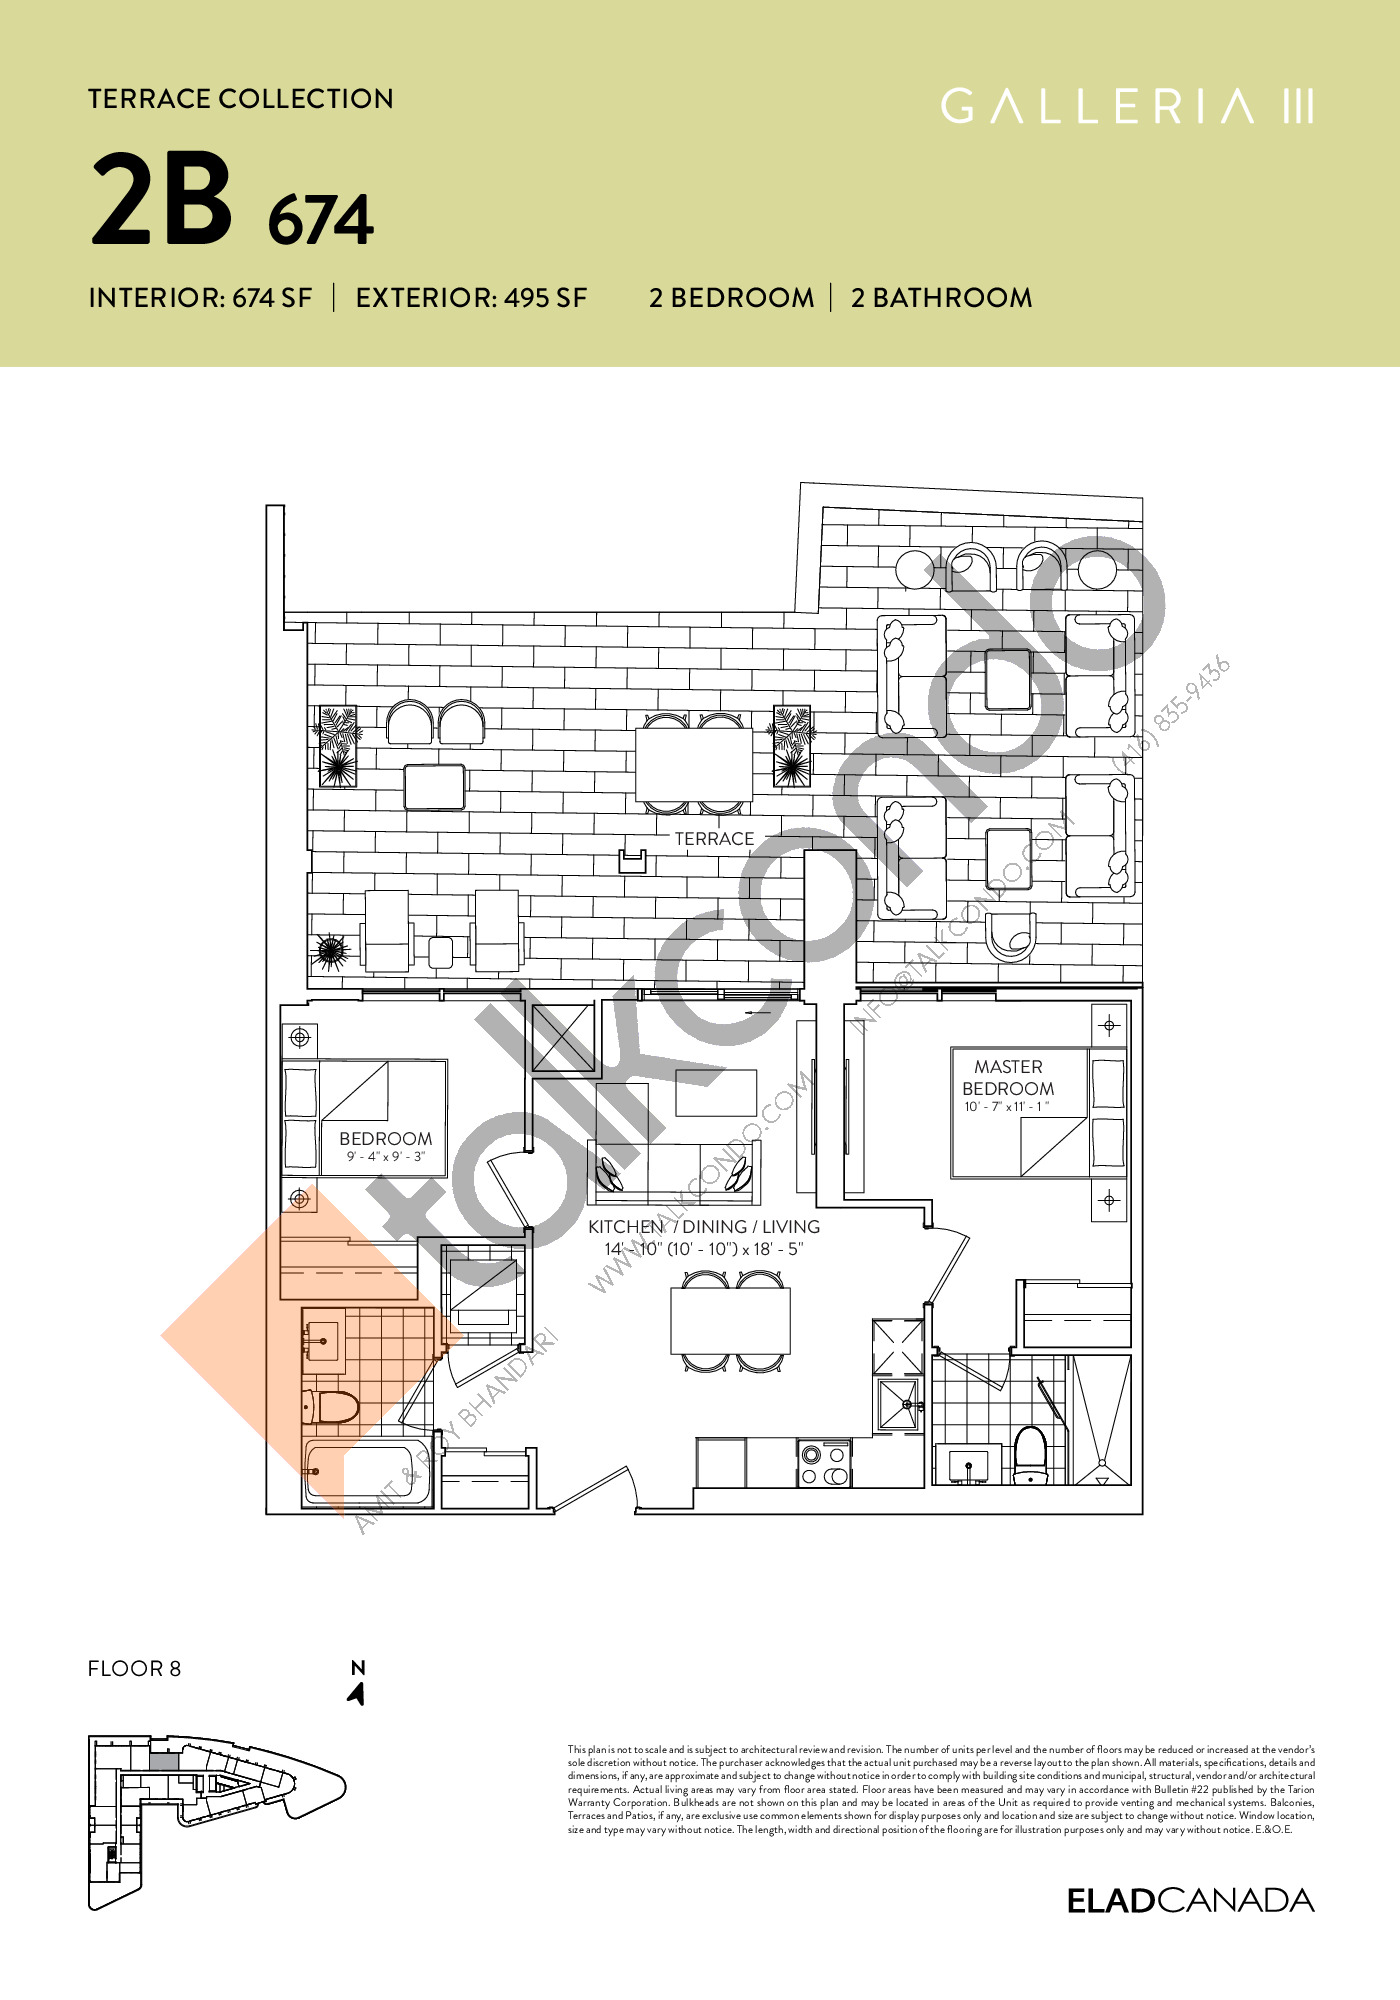 2B 674 - Terrace Collection Floor Plan at Galleria 03 Condos - 674 sq.ft